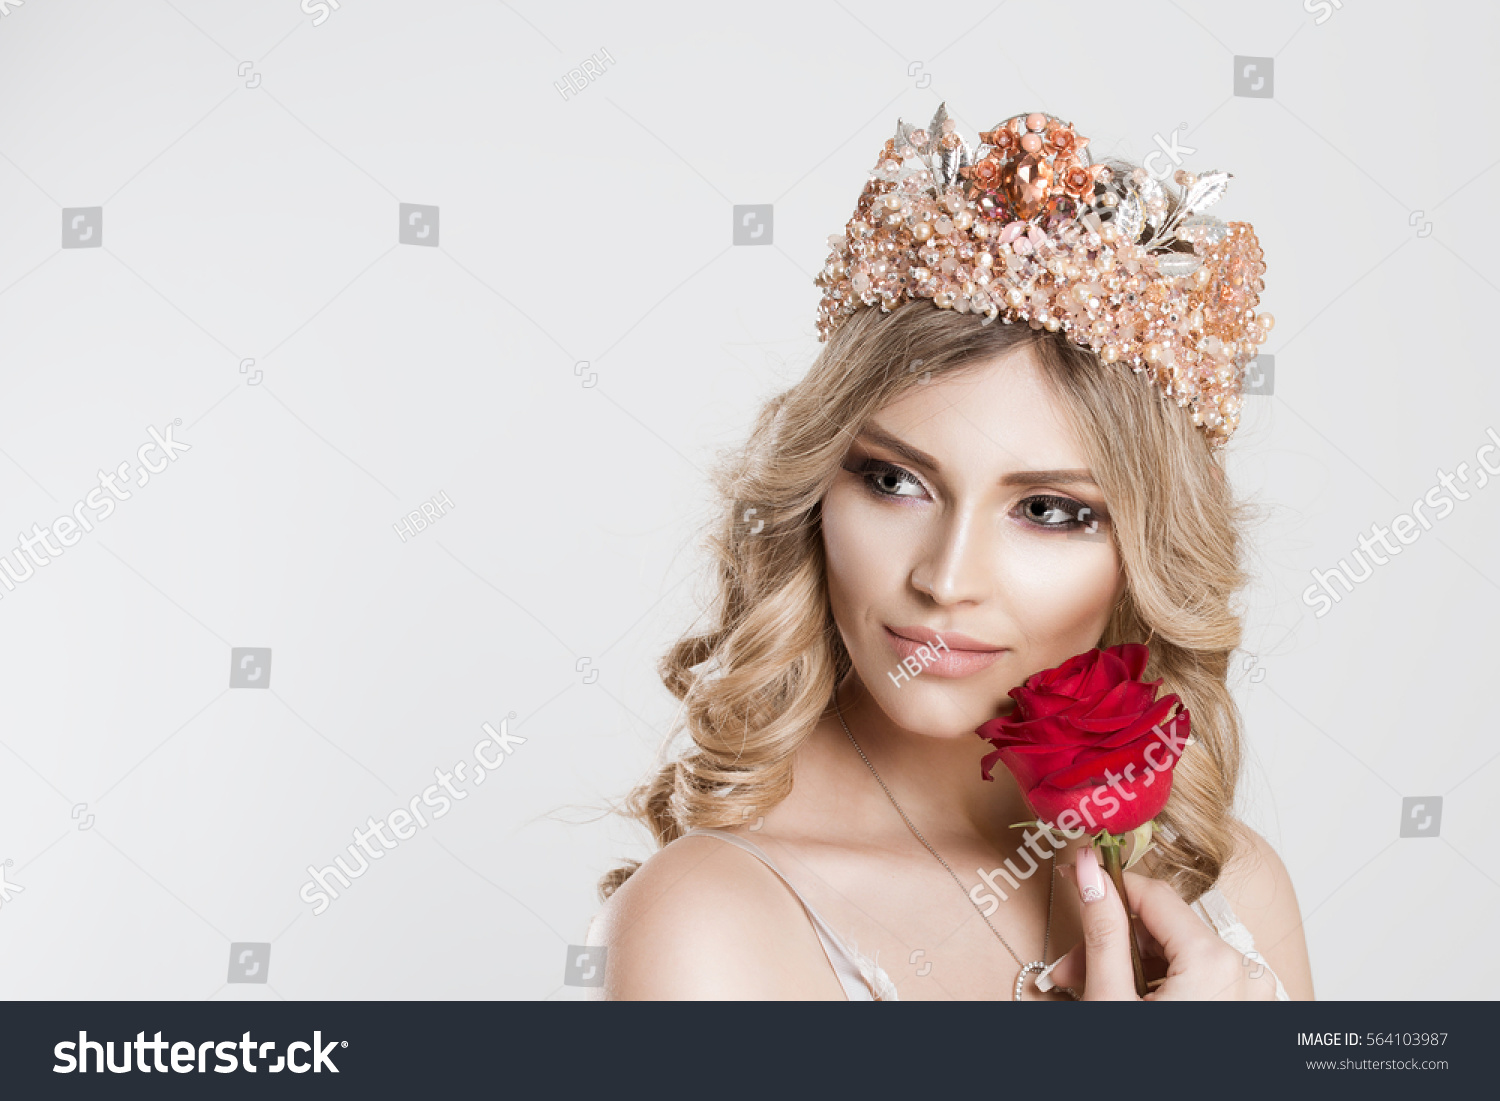 Beauty Queen Bride Bright Pink Crown Stock Photo 564103987